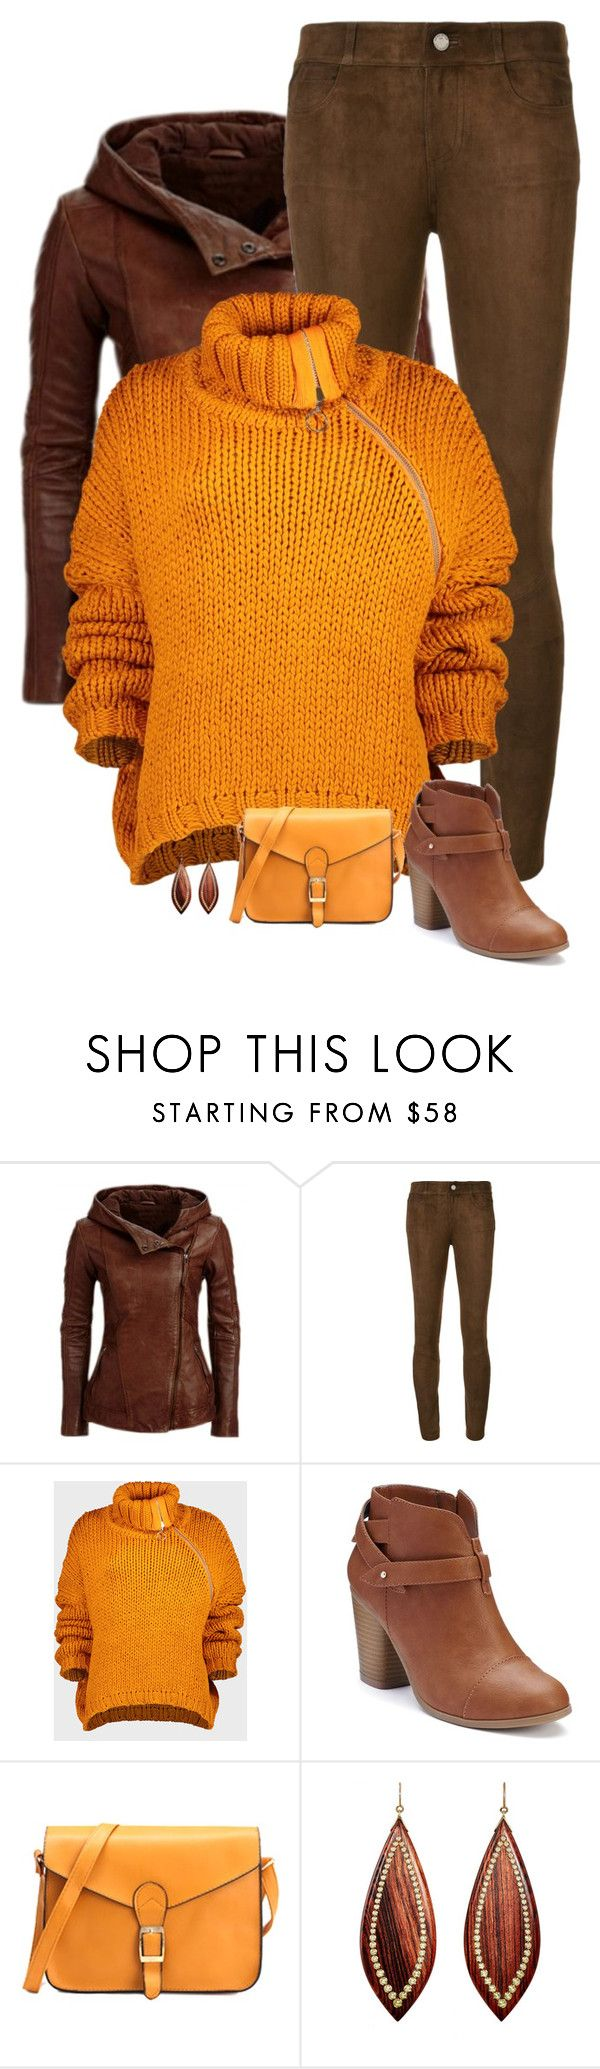 """""""456"""" by divacrafts ❤ liked on Polyvore featuring Paige Denim, Marques'Almeida, LC Lauren Conrad, Mark Davis and Original"""